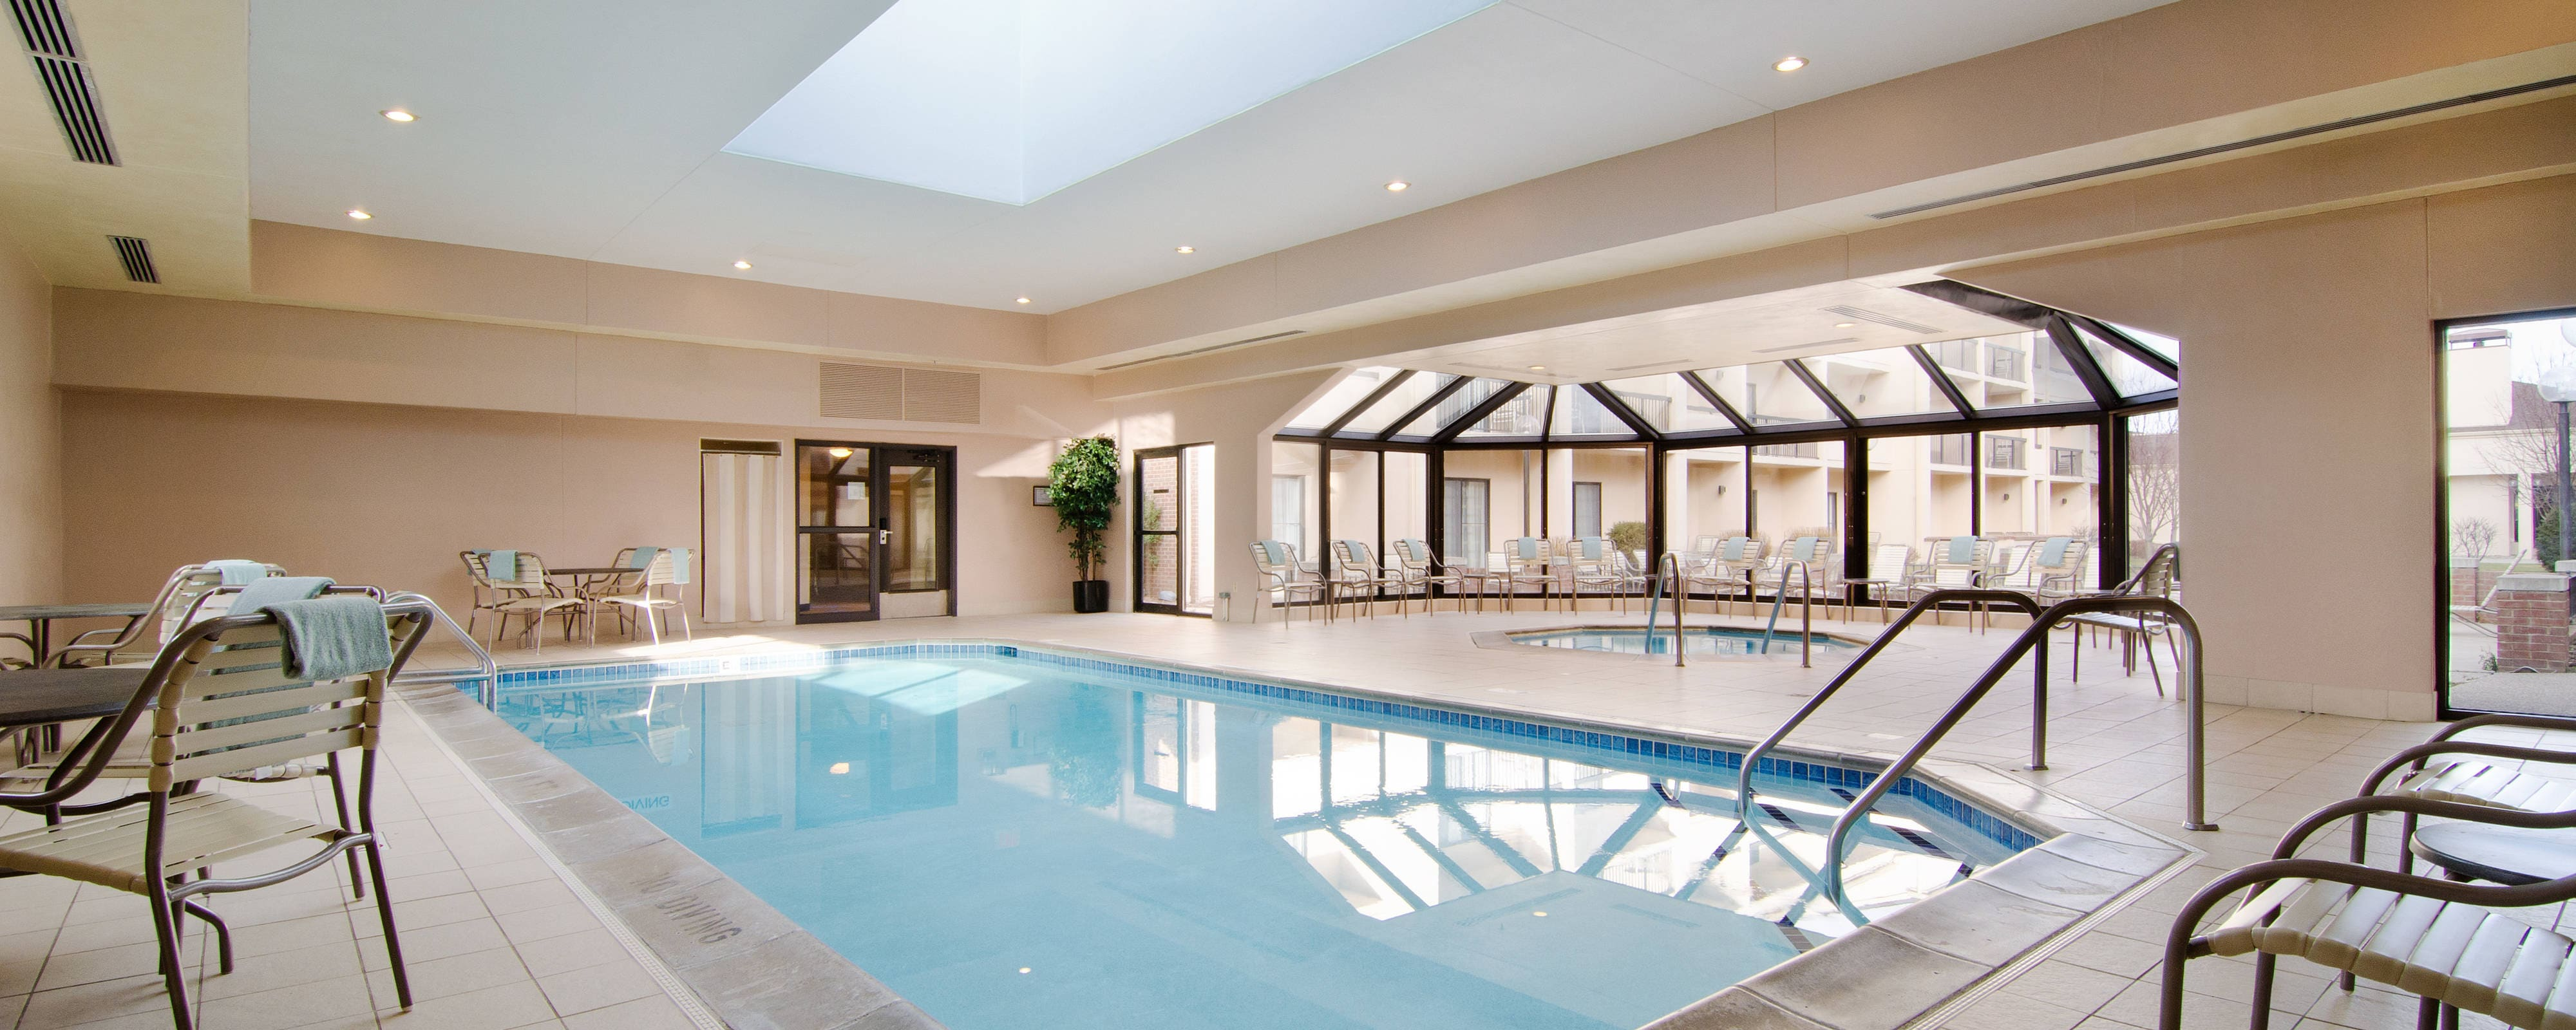 Eden Prairie Hotels With Pool And Gym Courtyard